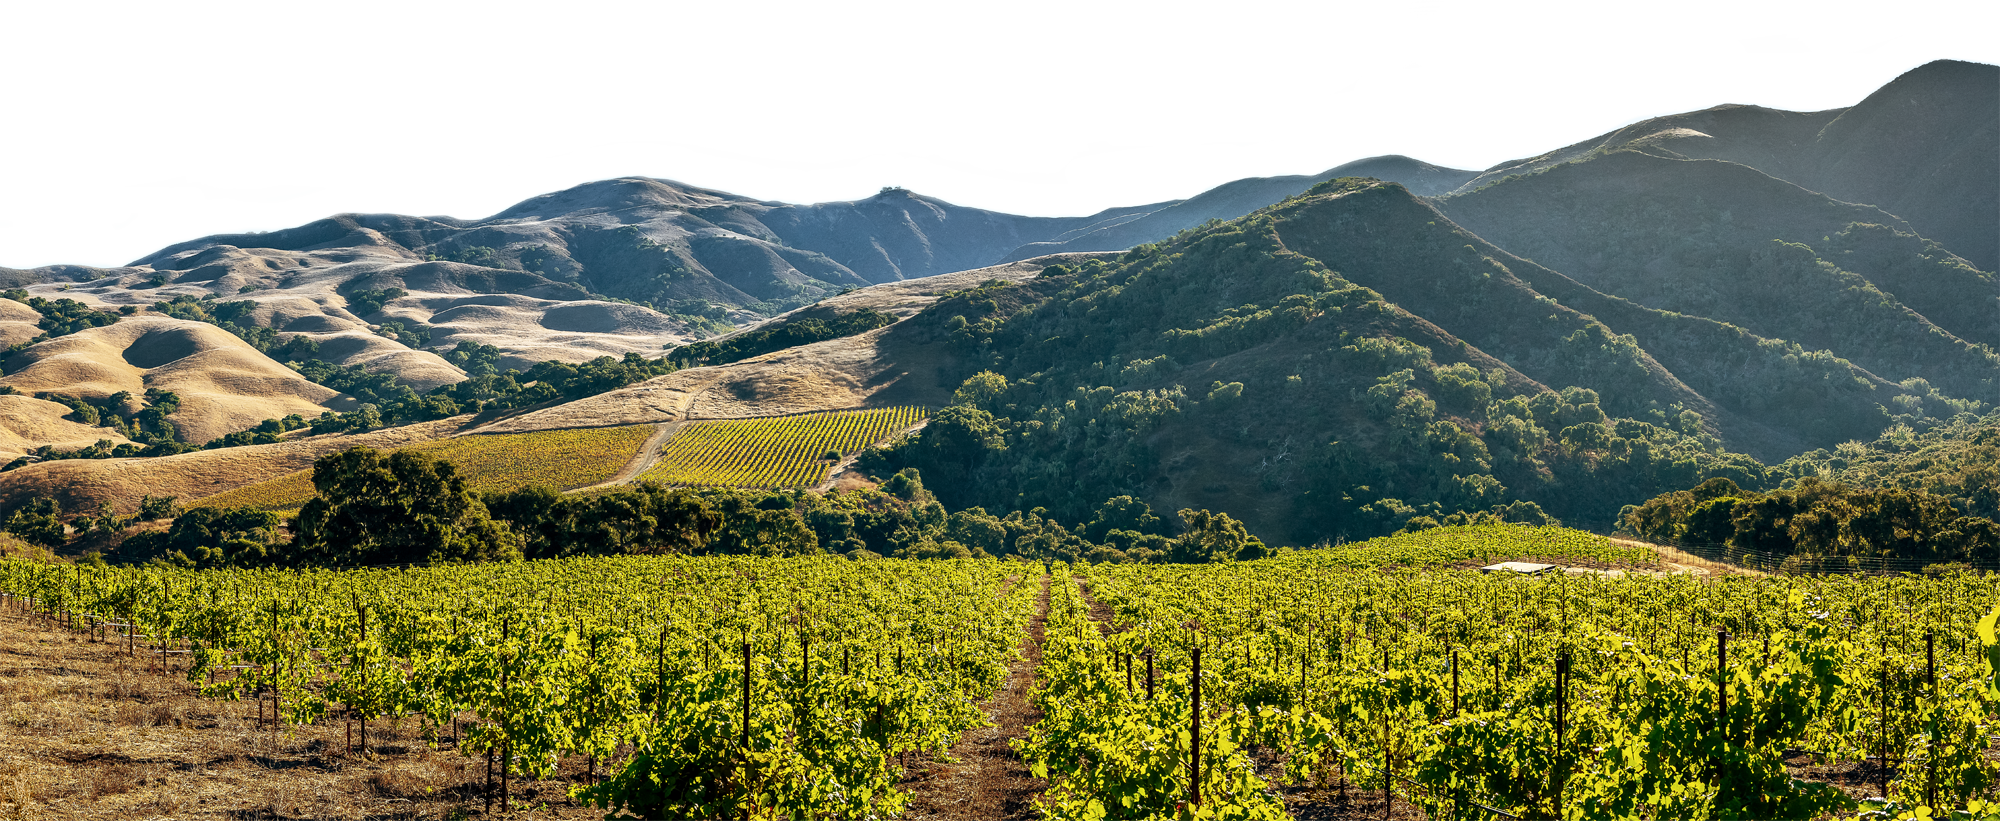 Vineyard and mountain range